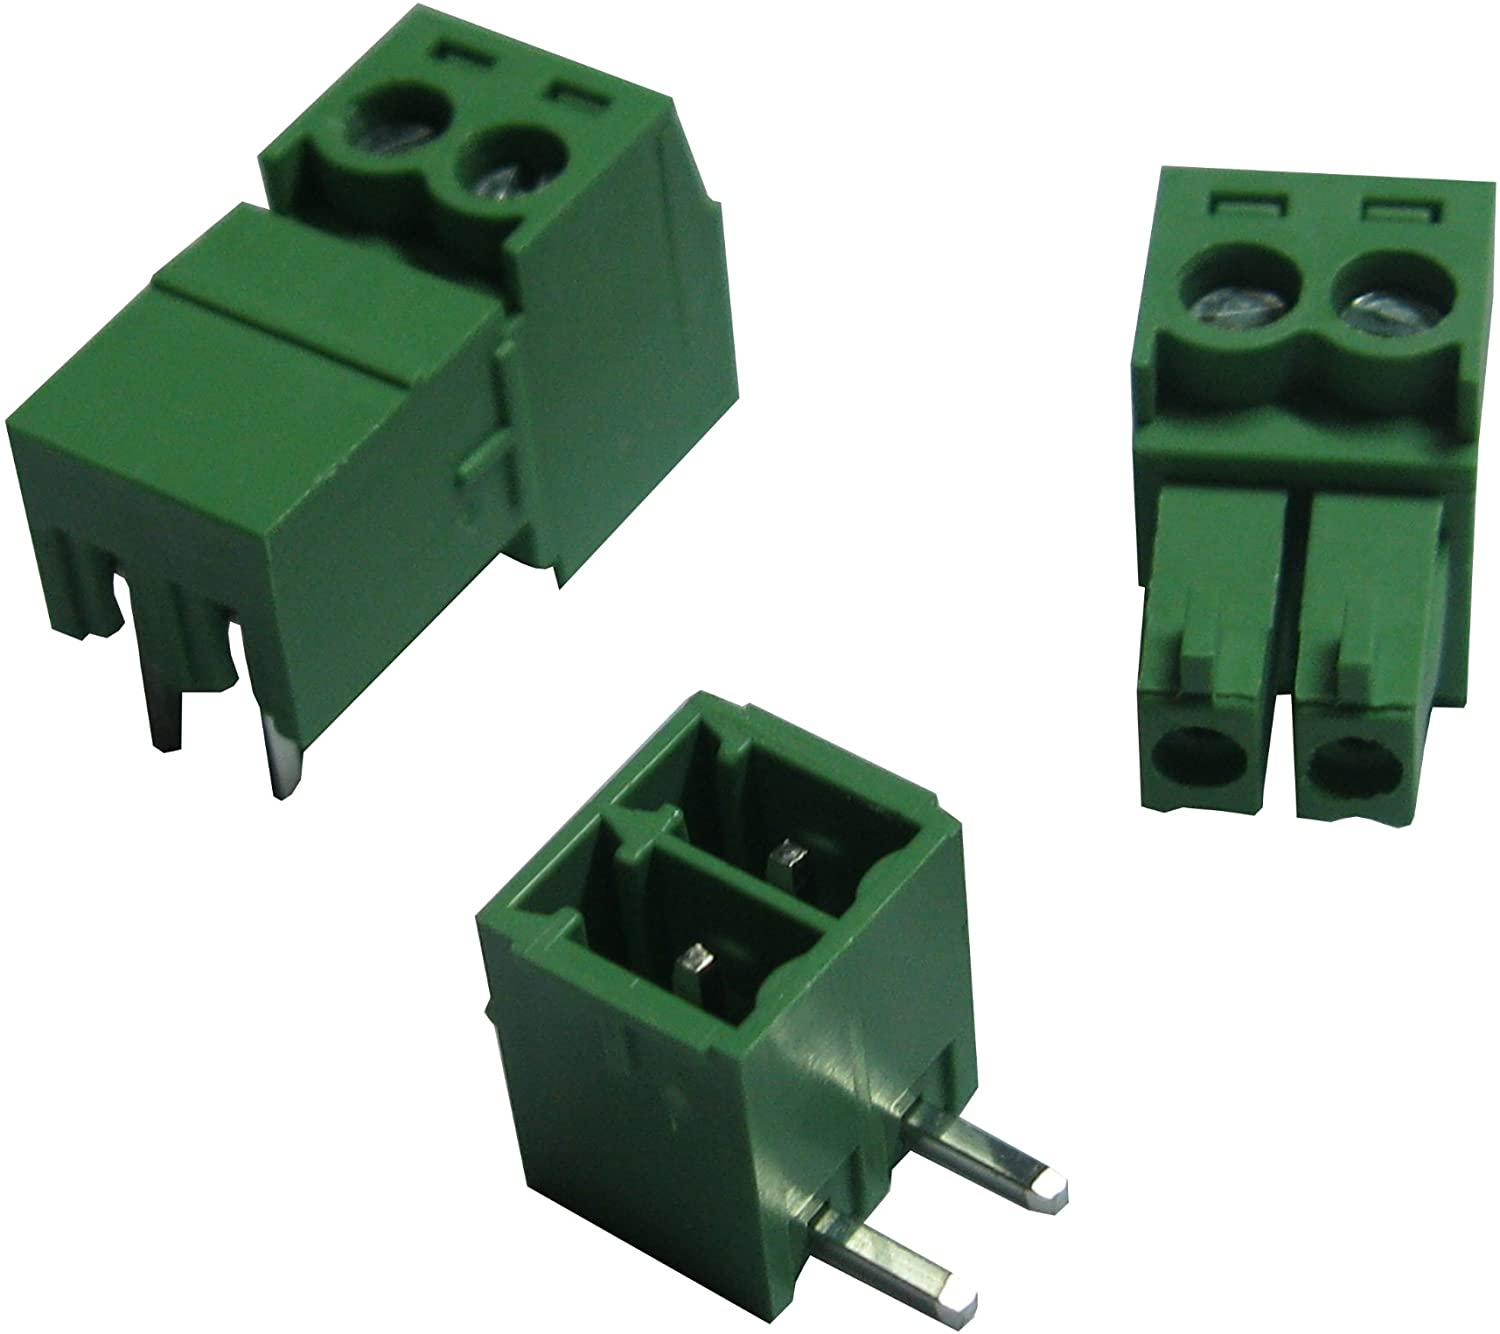 10 Pcs Pitch 3.5mm Angle 2way/pin Screw Terminal Block Connector w/Angle Pin Green Color Pluggable Type Skywalking